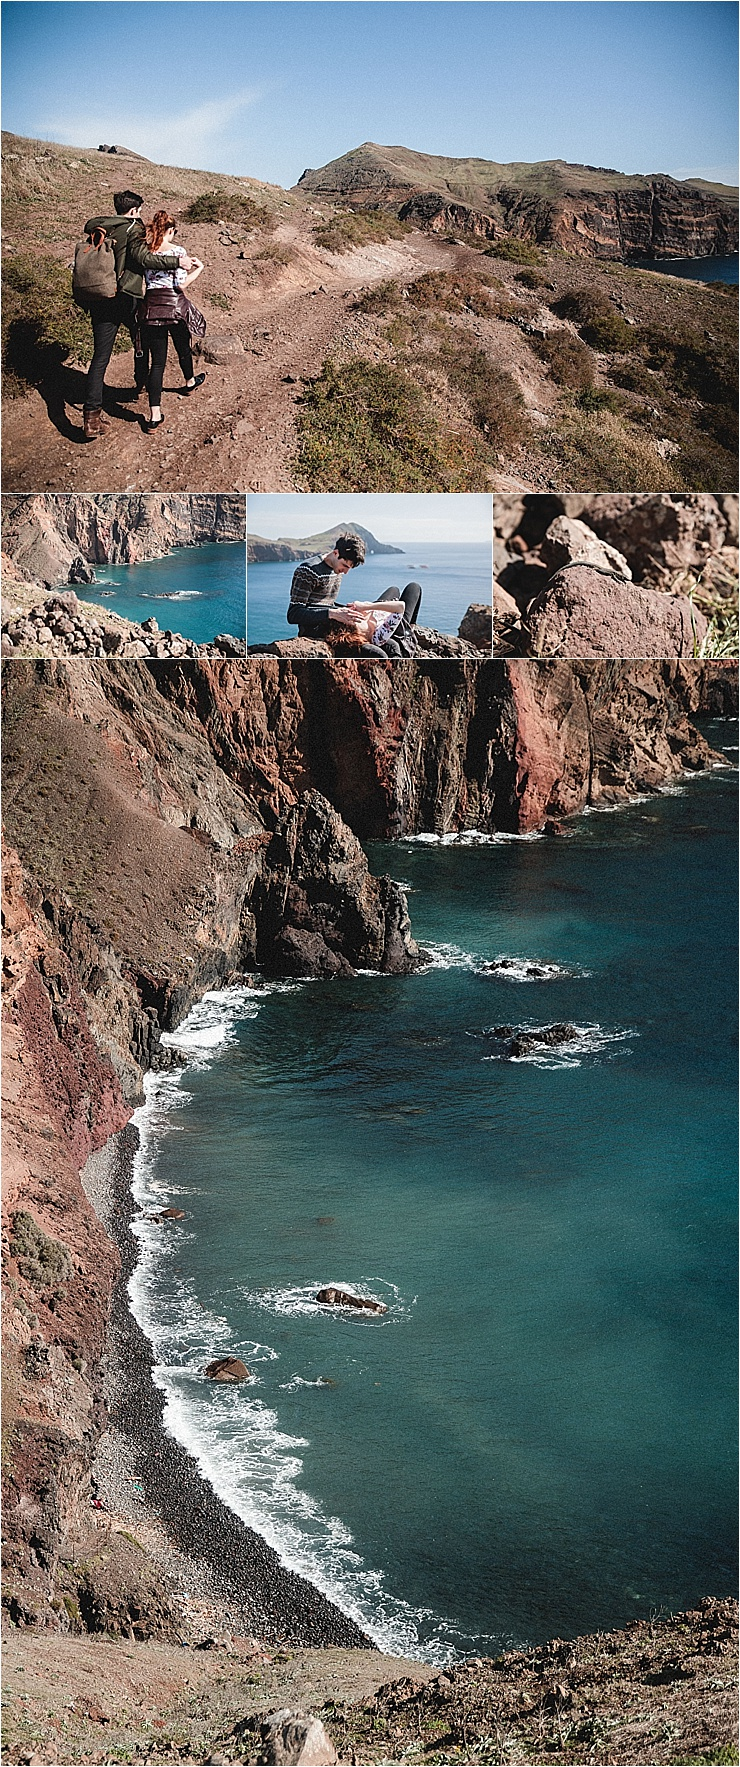 Hiking along the cliffs in Madeira by Konstanz-Fotograf